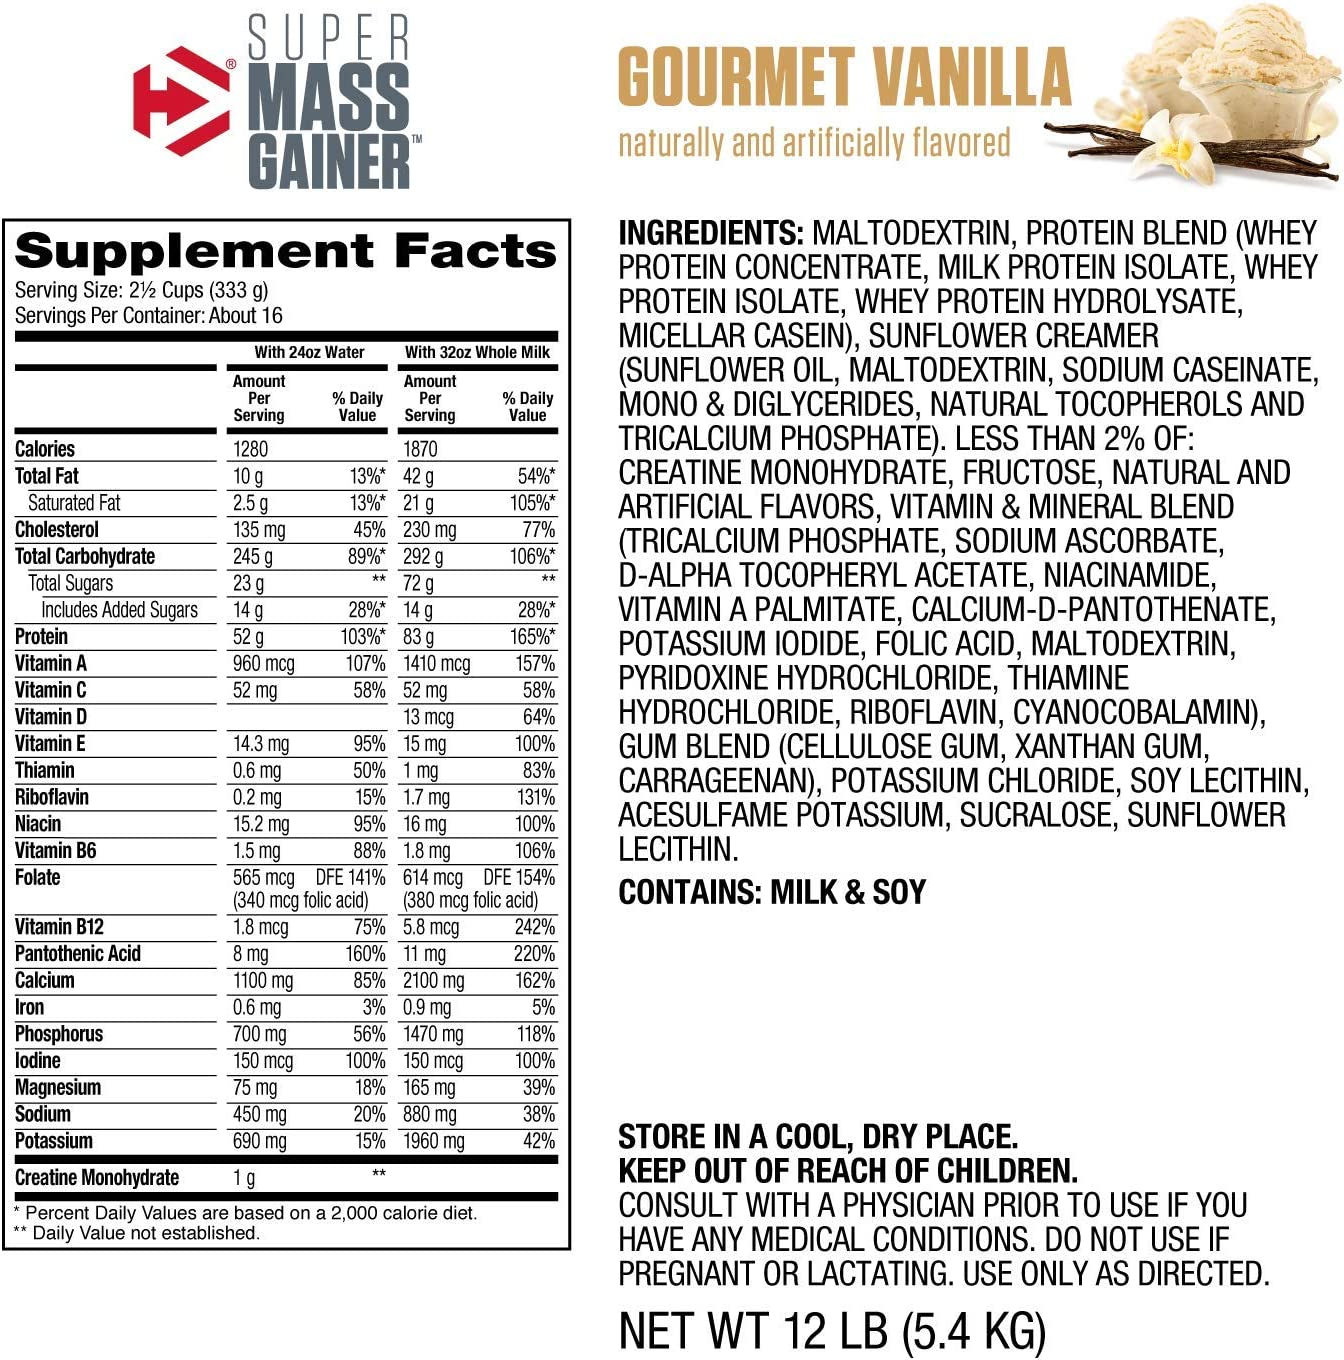 Nutritional ingredients